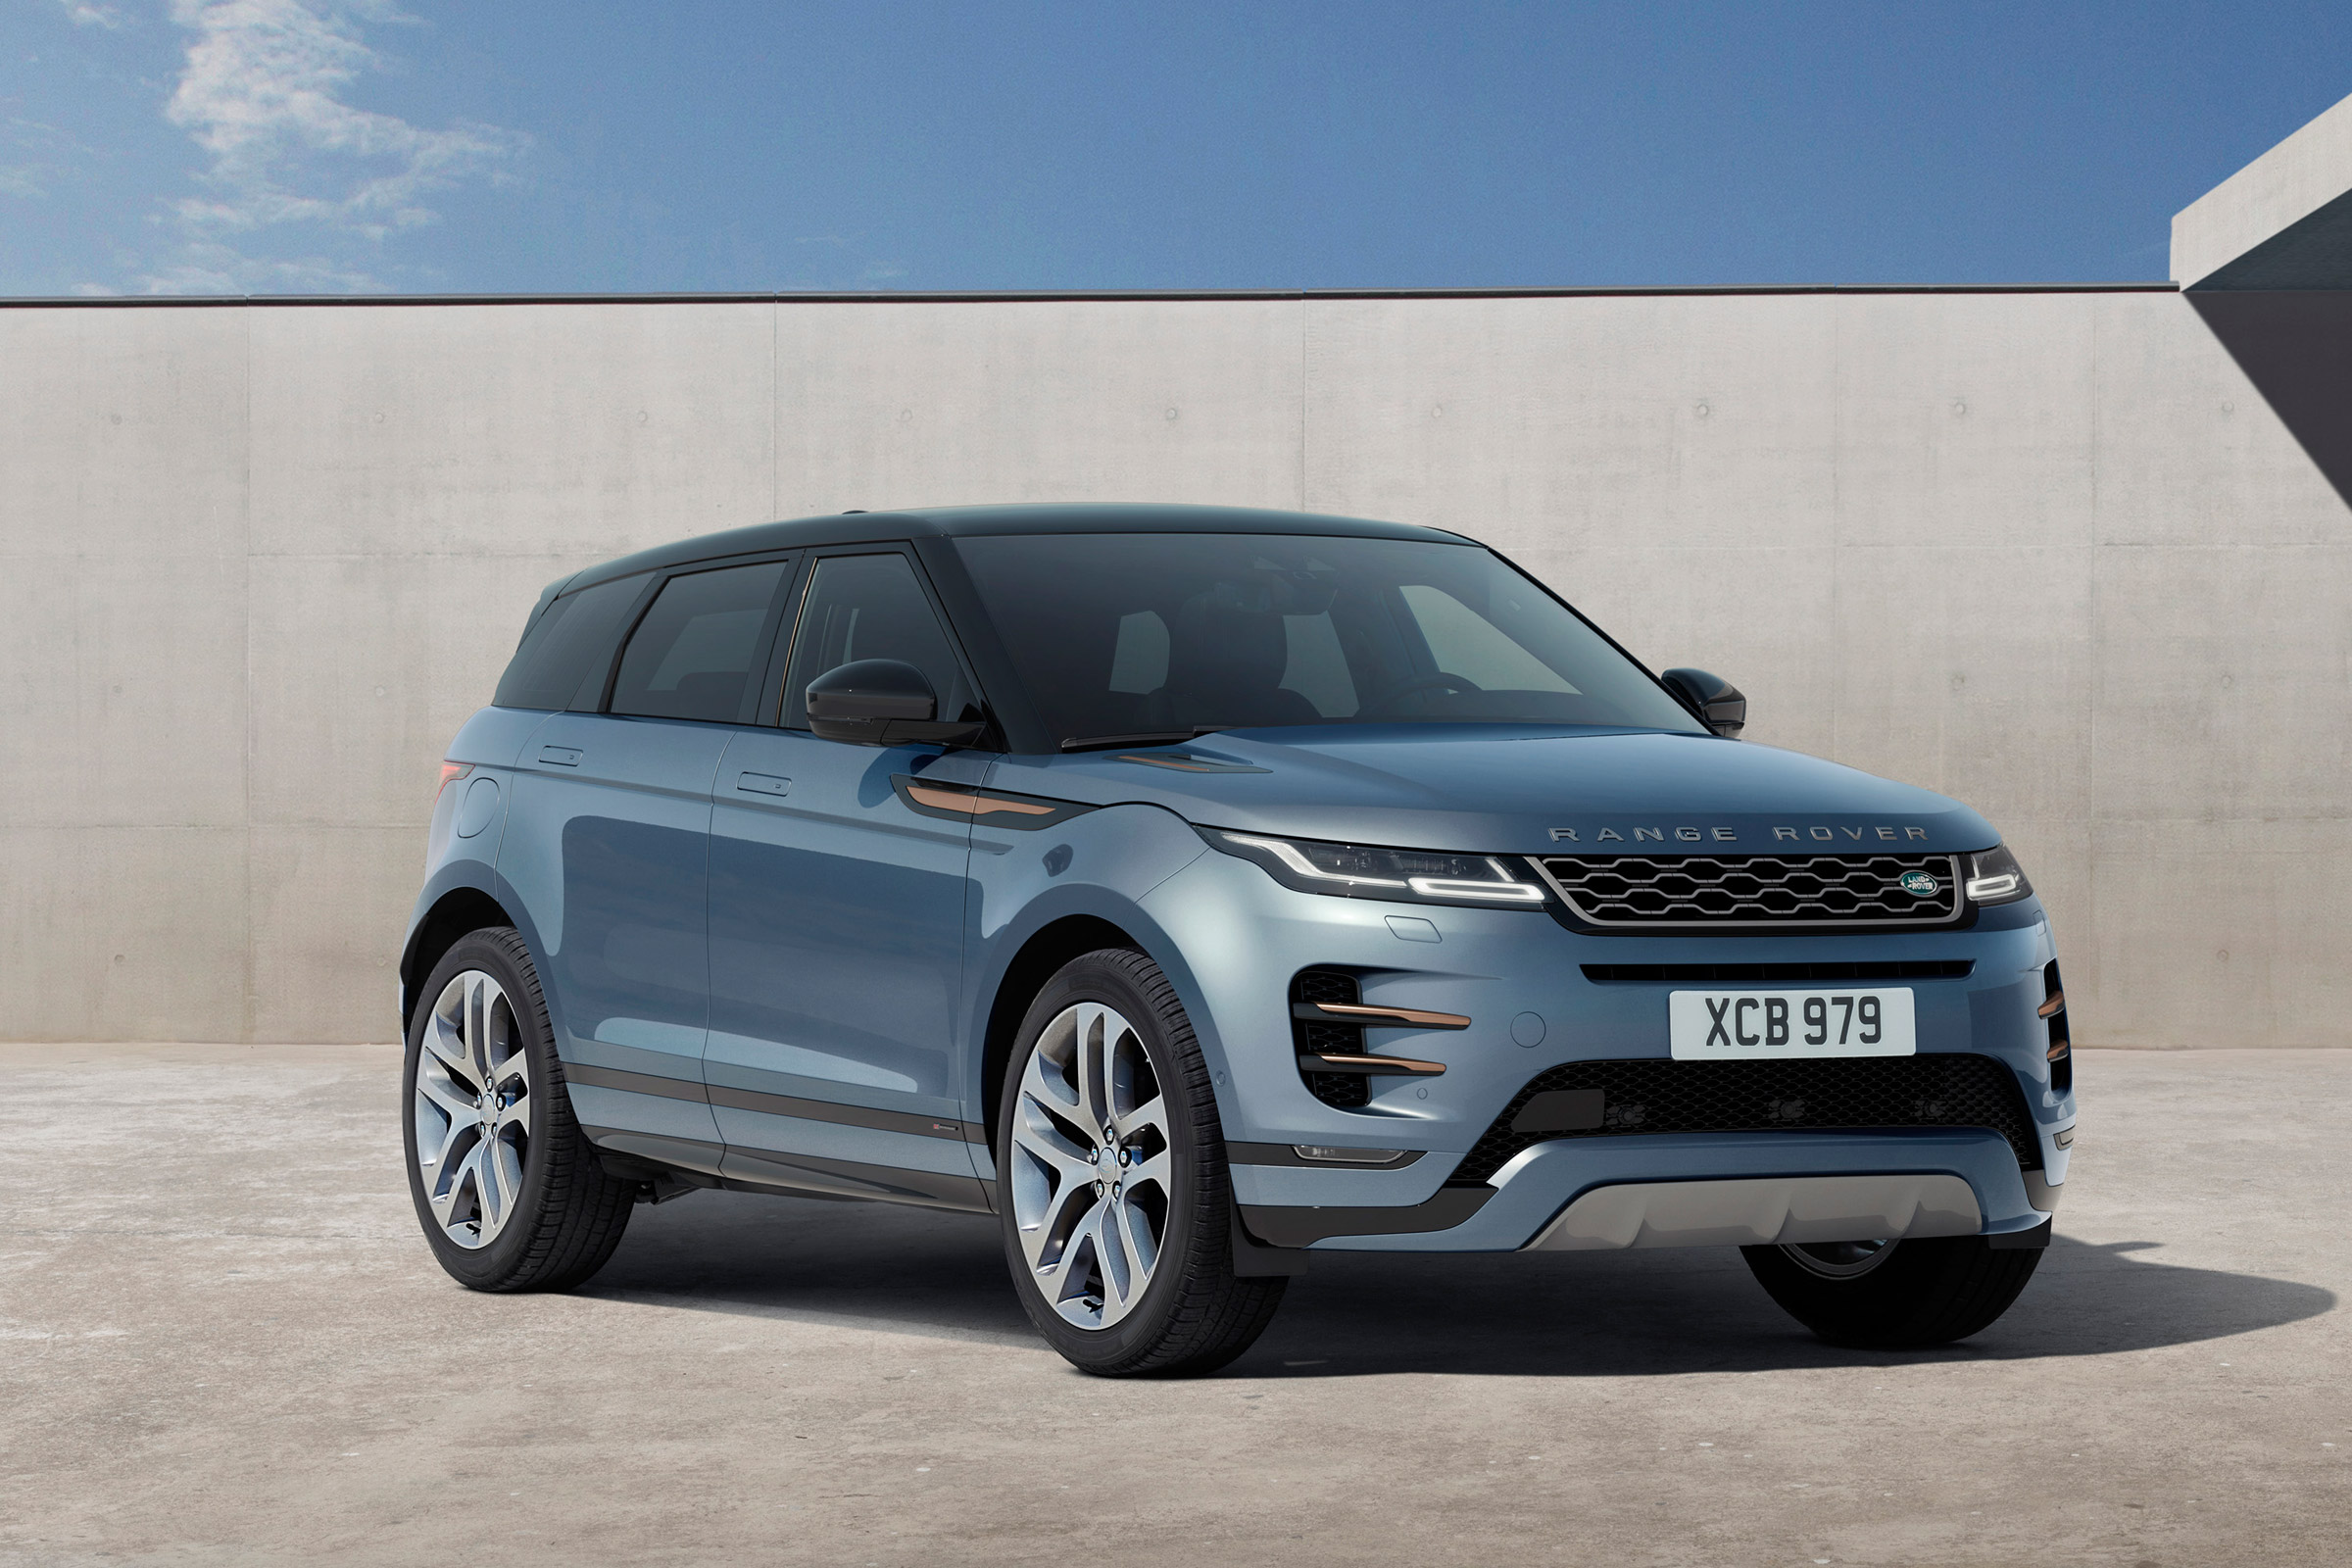 New Range Rover Evoque 2019 Prices And Specifications Carbuyer